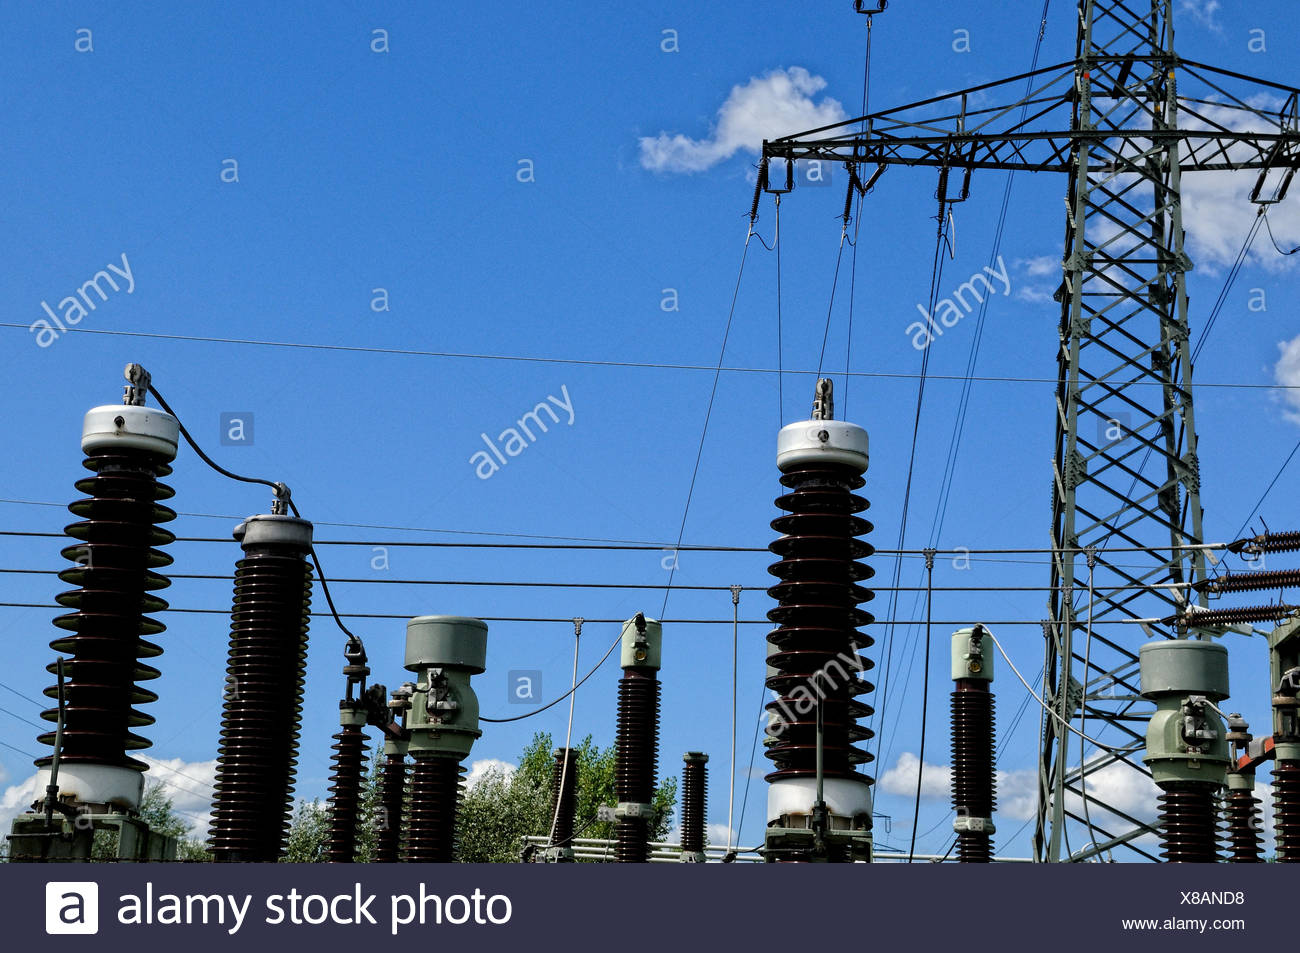 transformer,electricity substation - Stock Image